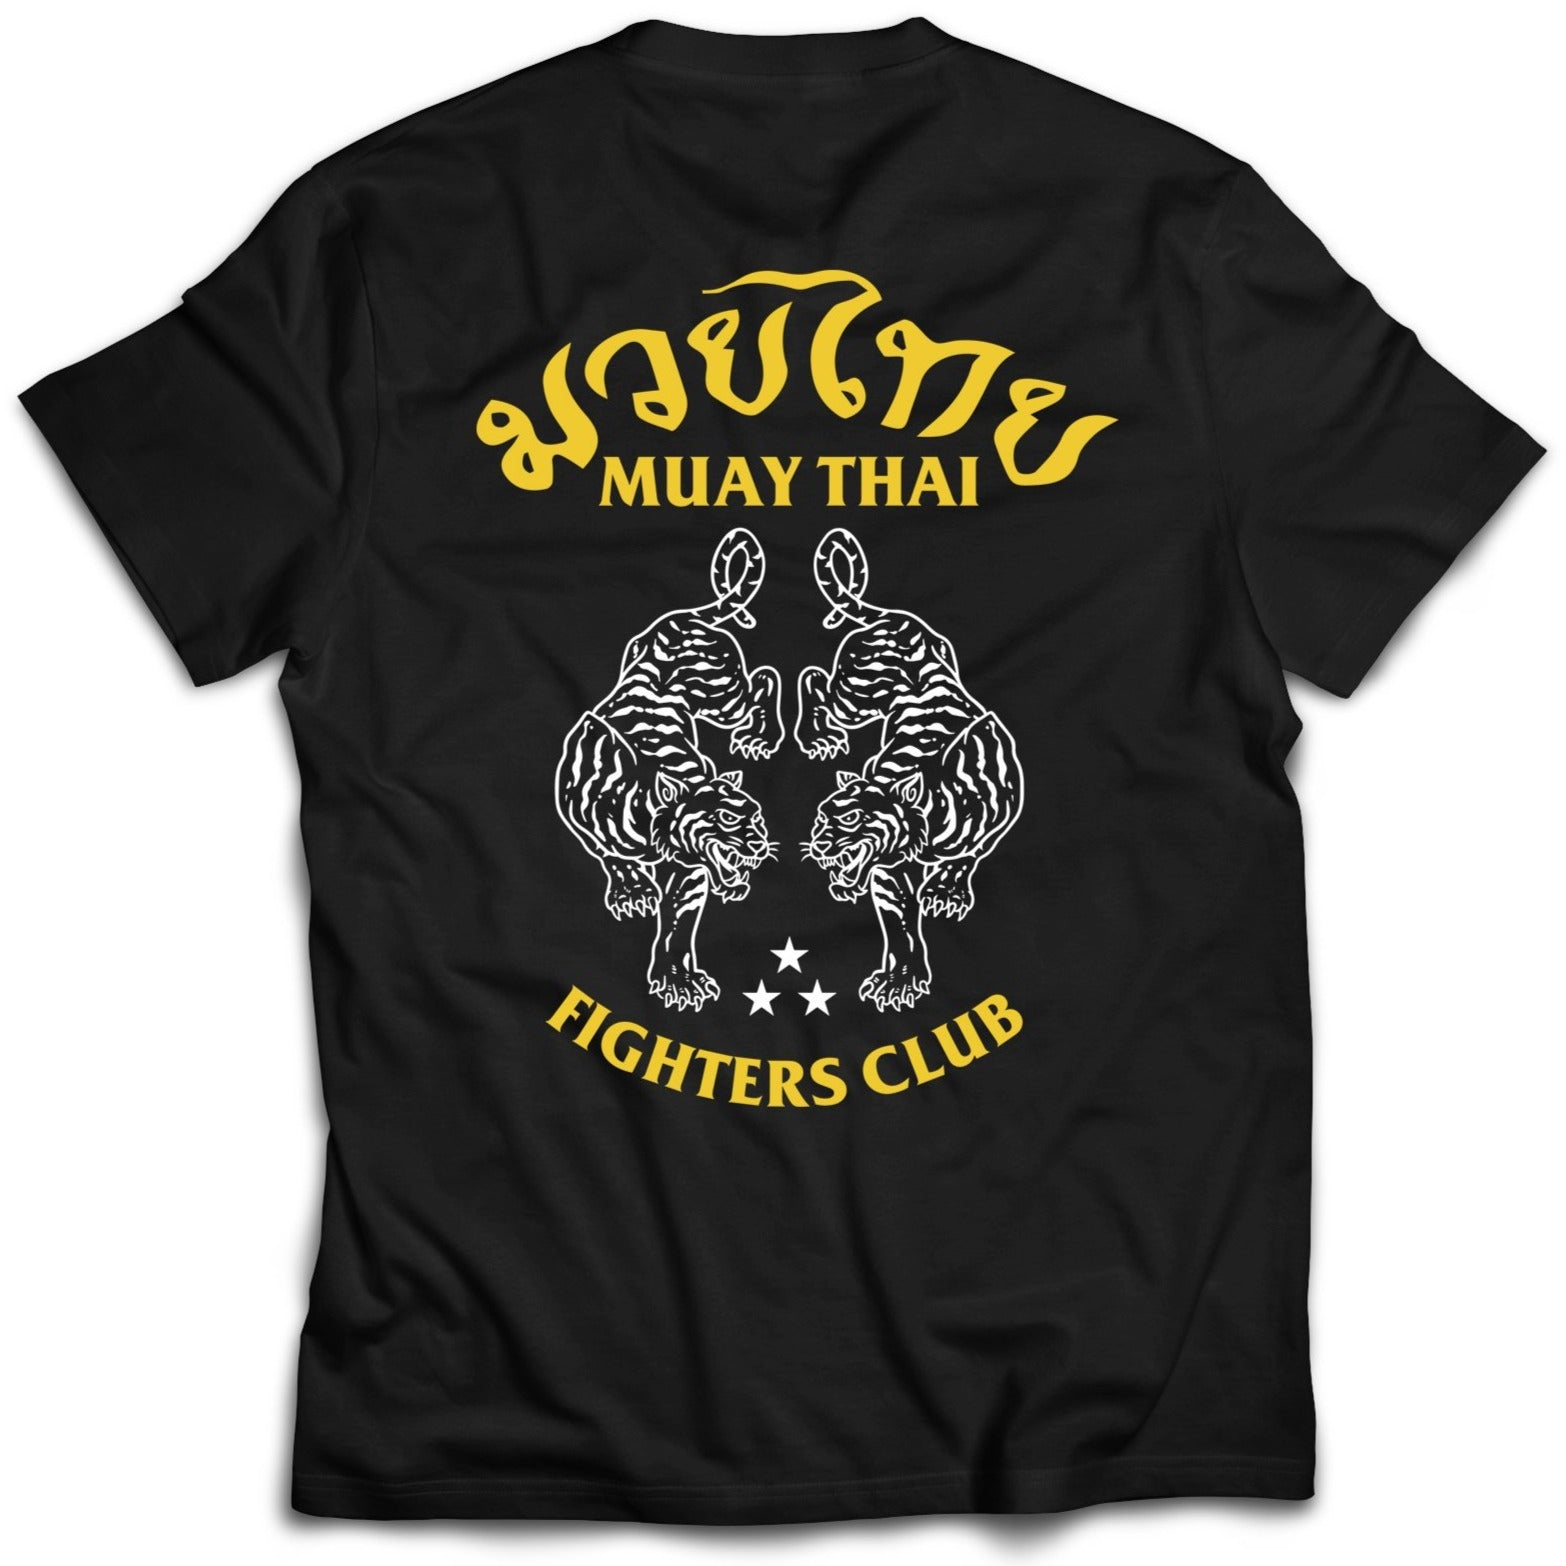 MUAY THAI TWIN TIGER T-SHIRT - BLACK